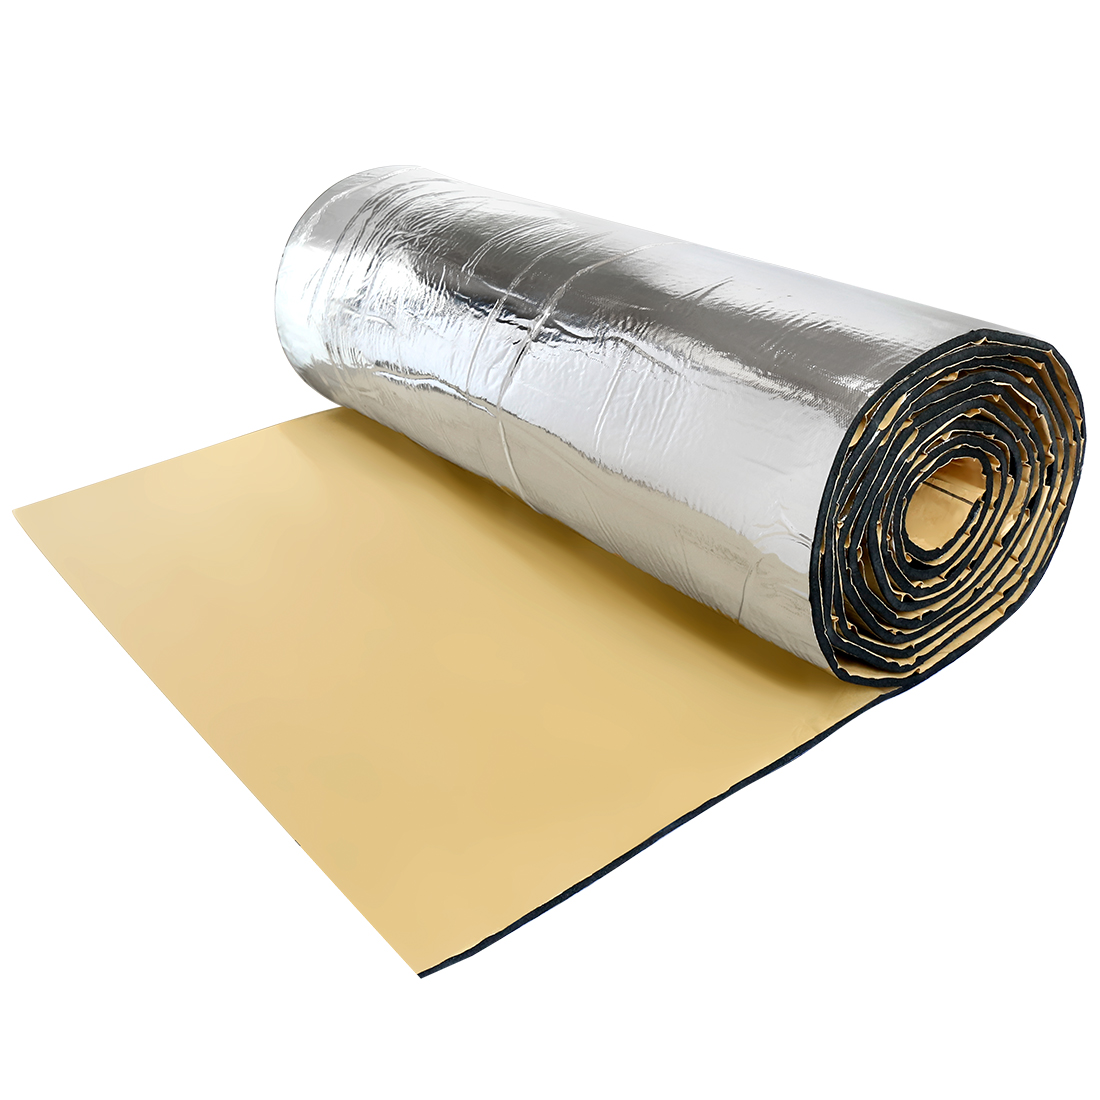 394mil 10mm 16.36sqft Car Heat Sound Absorption Deadener Insulation Mat Liner